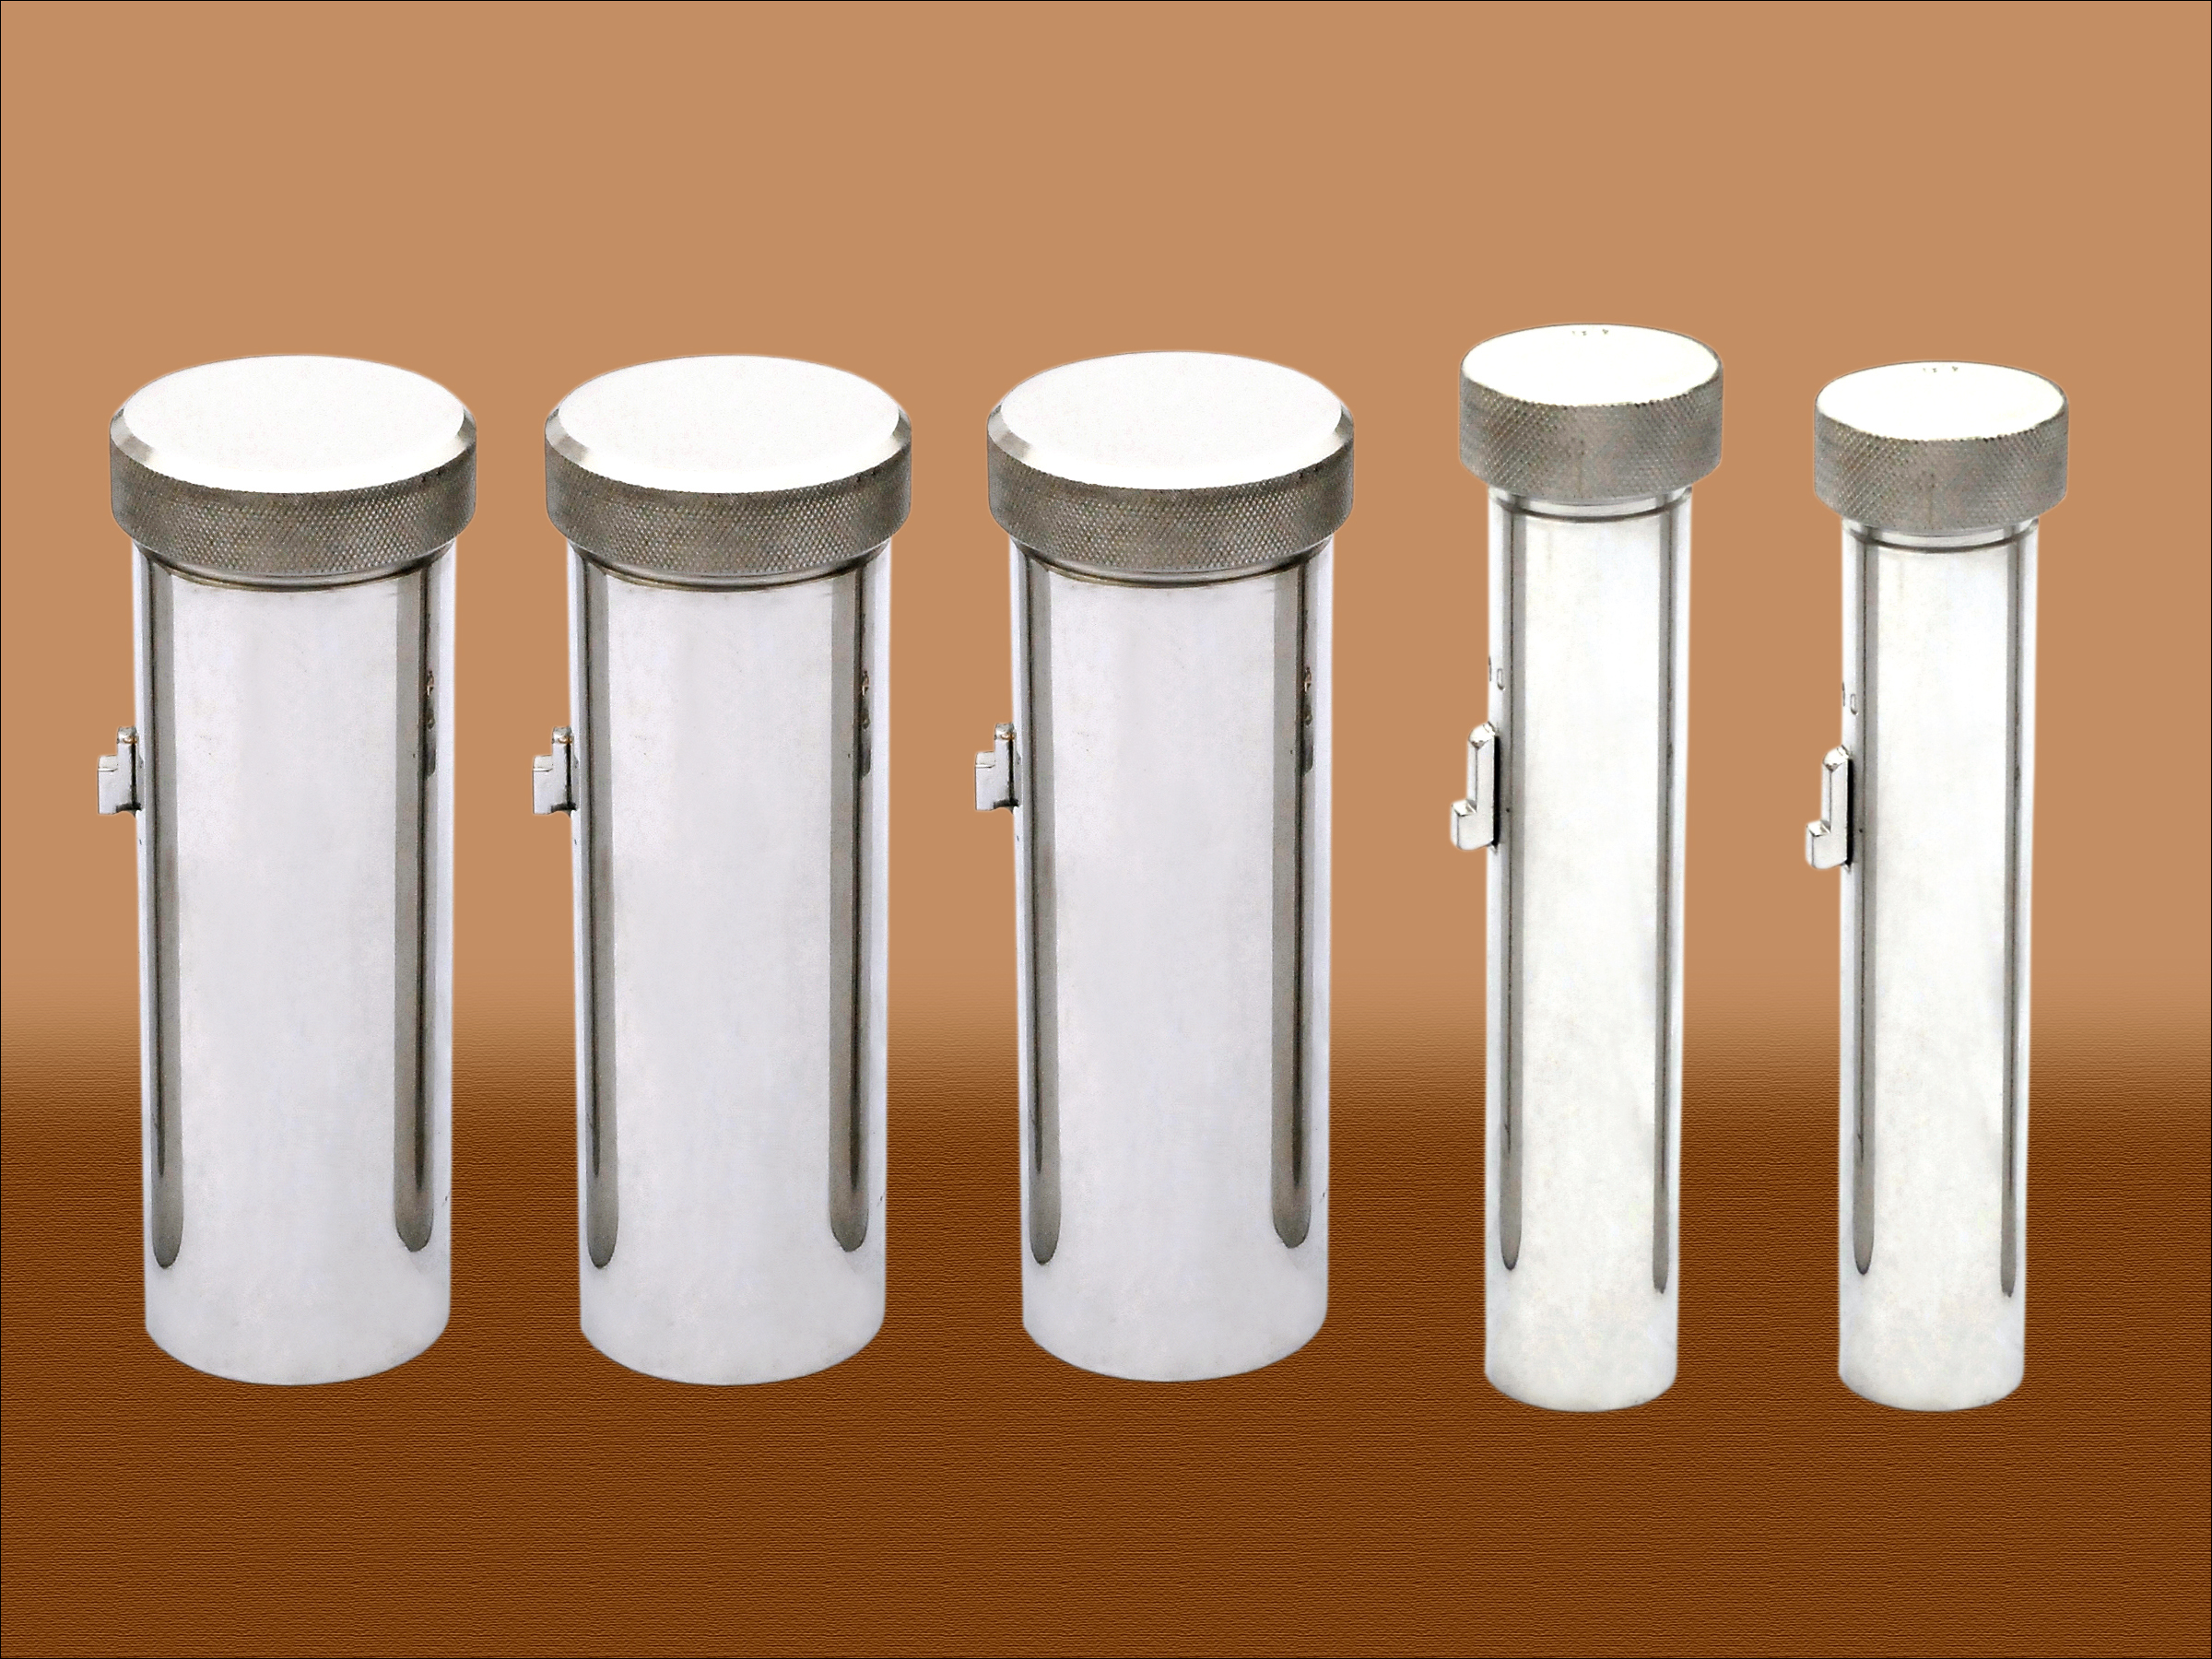 Supplier of Rota Dyer Machine in Ahmedabad